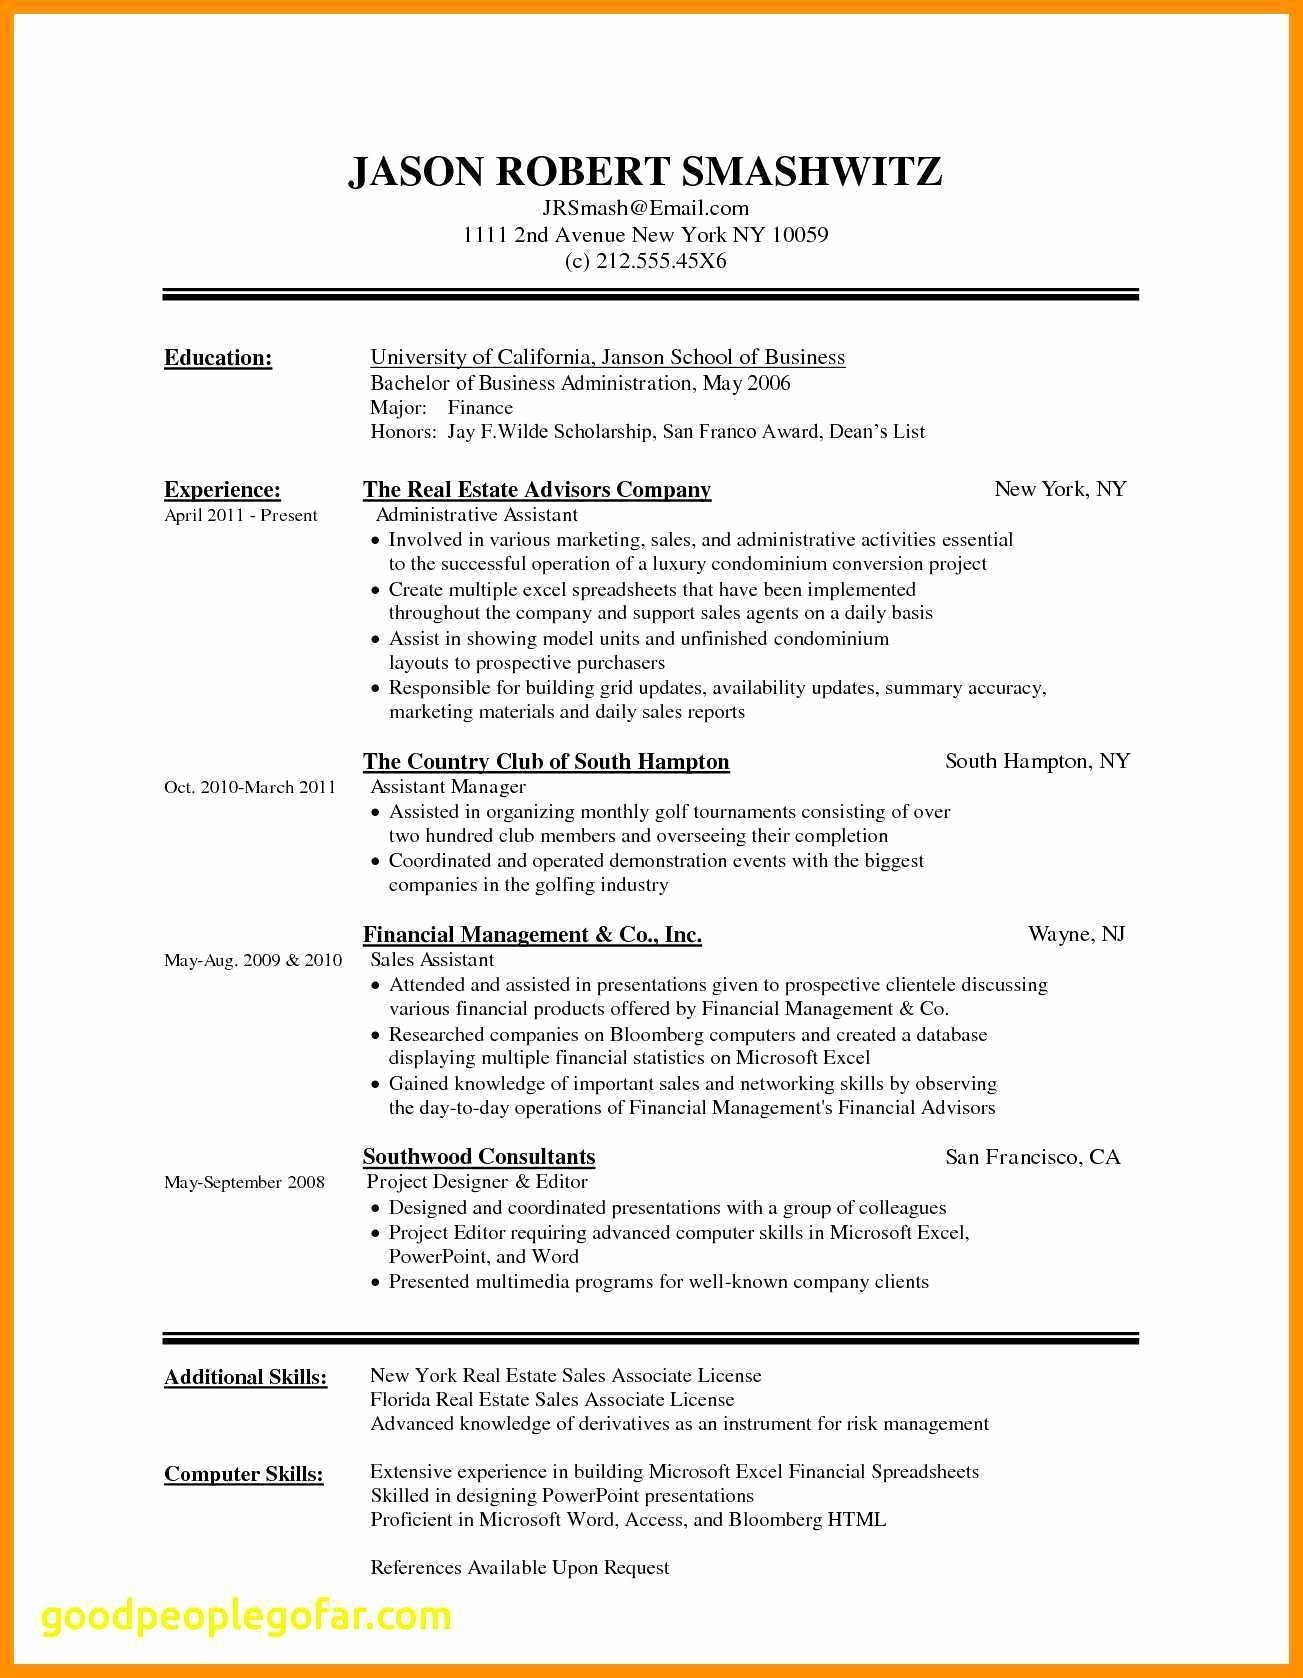 free microsoft resume templates example-Free Resume Templates Microsoft Best Elegant Pr Resume Template Elegant Dictionary Template 0d Archives 4-j